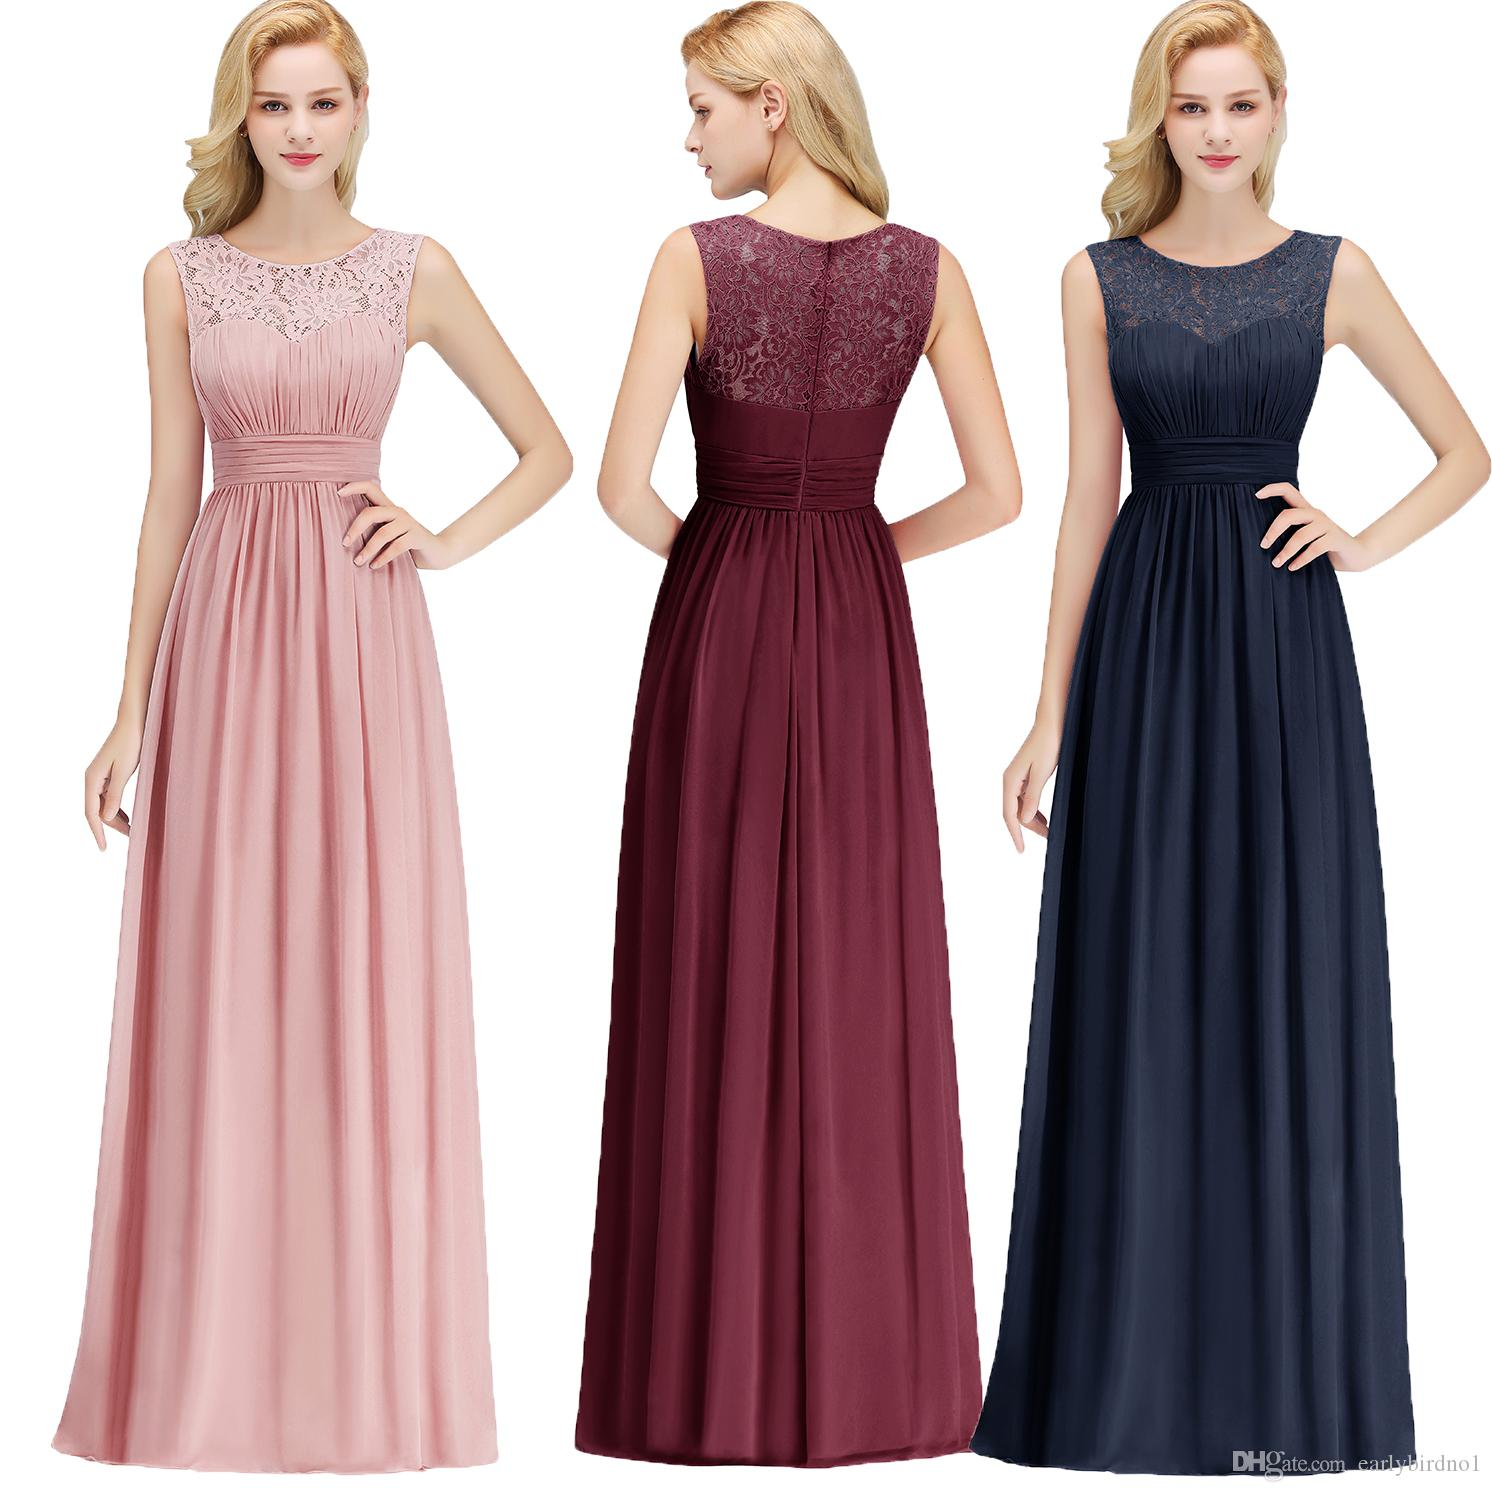 New Arrival Blush Pink Navy Blue Burgundy Bridesmaid Dresses Lace Chiffon  Floor Length Beach Garden Maid of Honor Gown Under $50 CPS1067